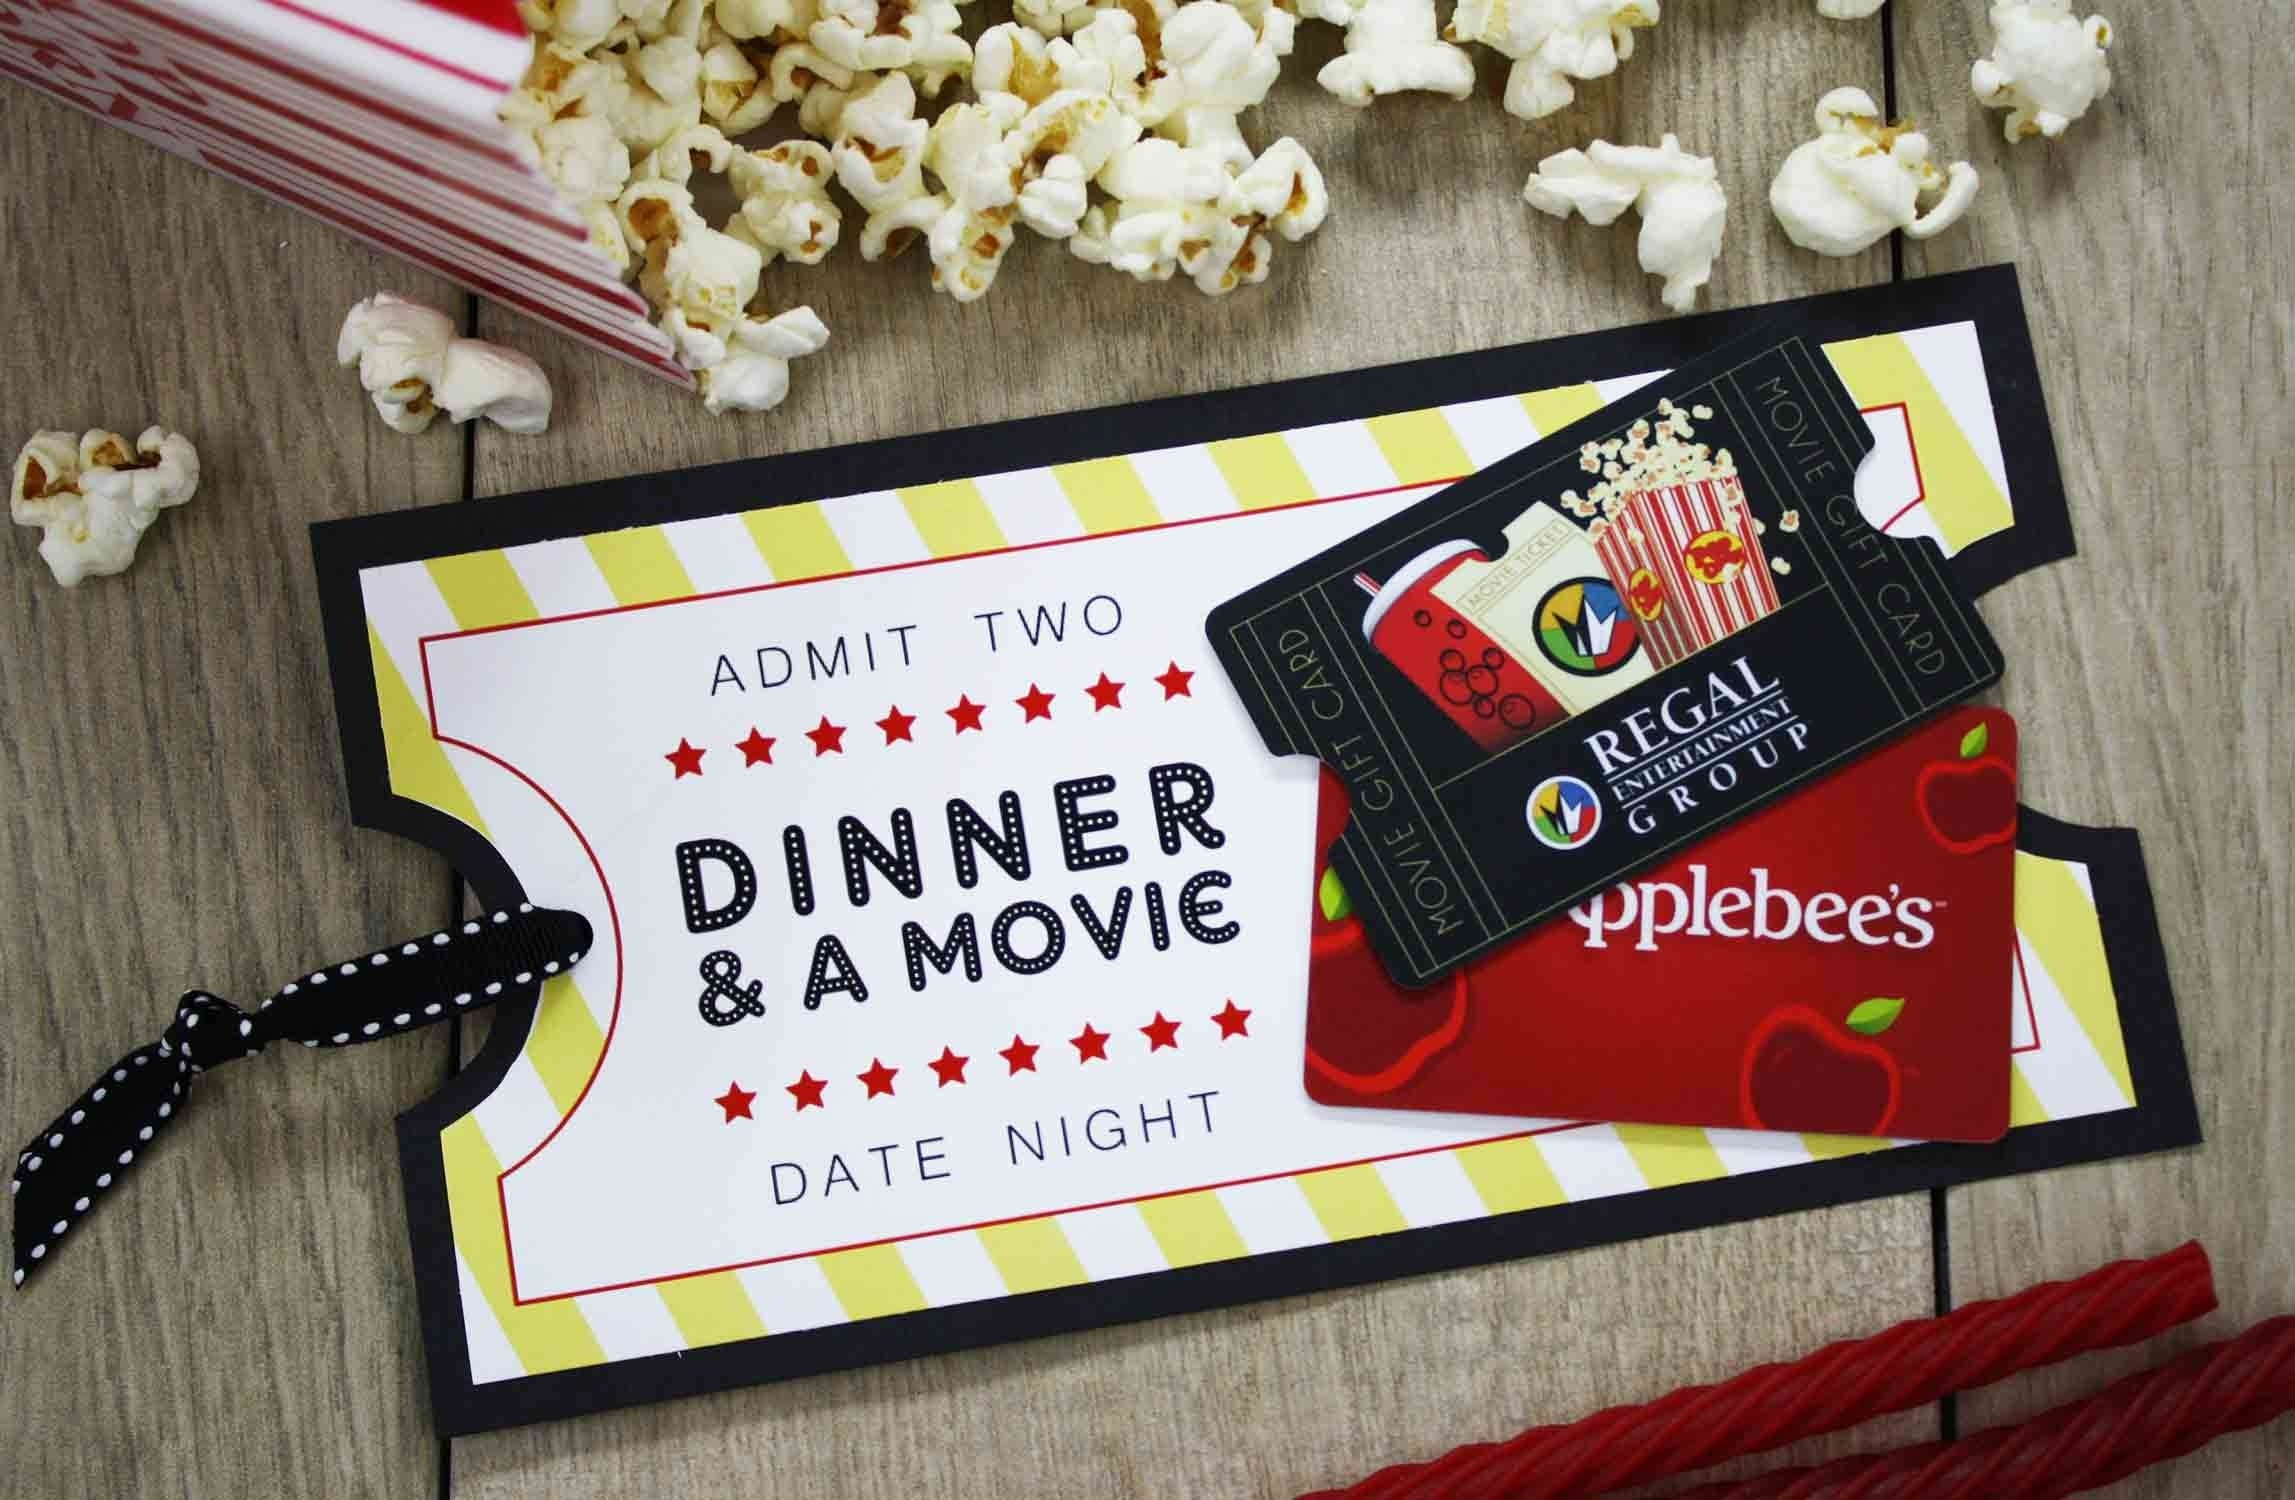 10 Stunning Gift Card Ideas For Couples free printable give date night for a wedding gift gcg 2 2021